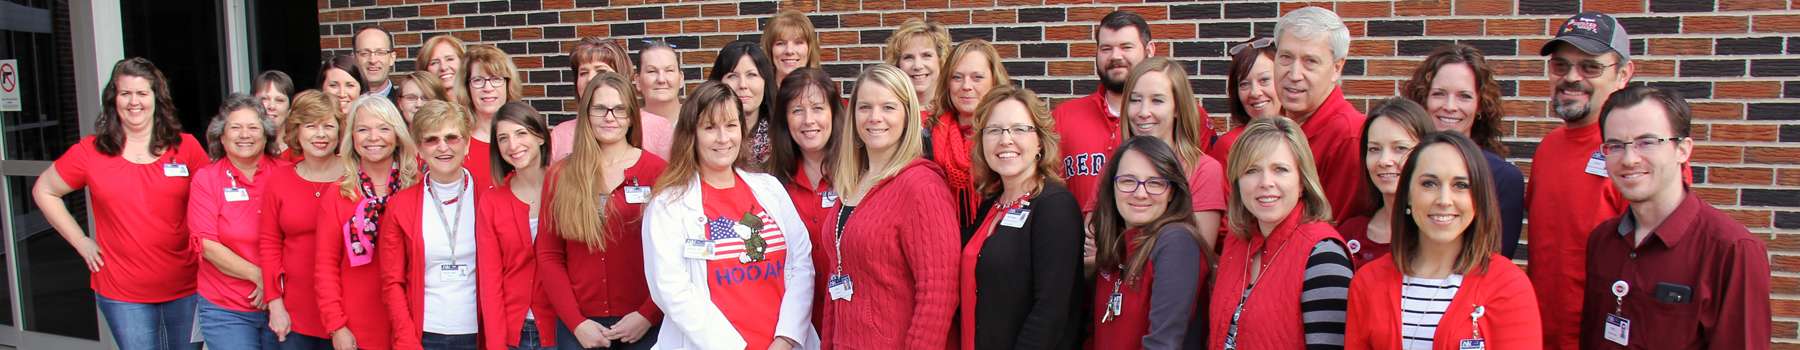 William Newton Hospital Wear Red Day